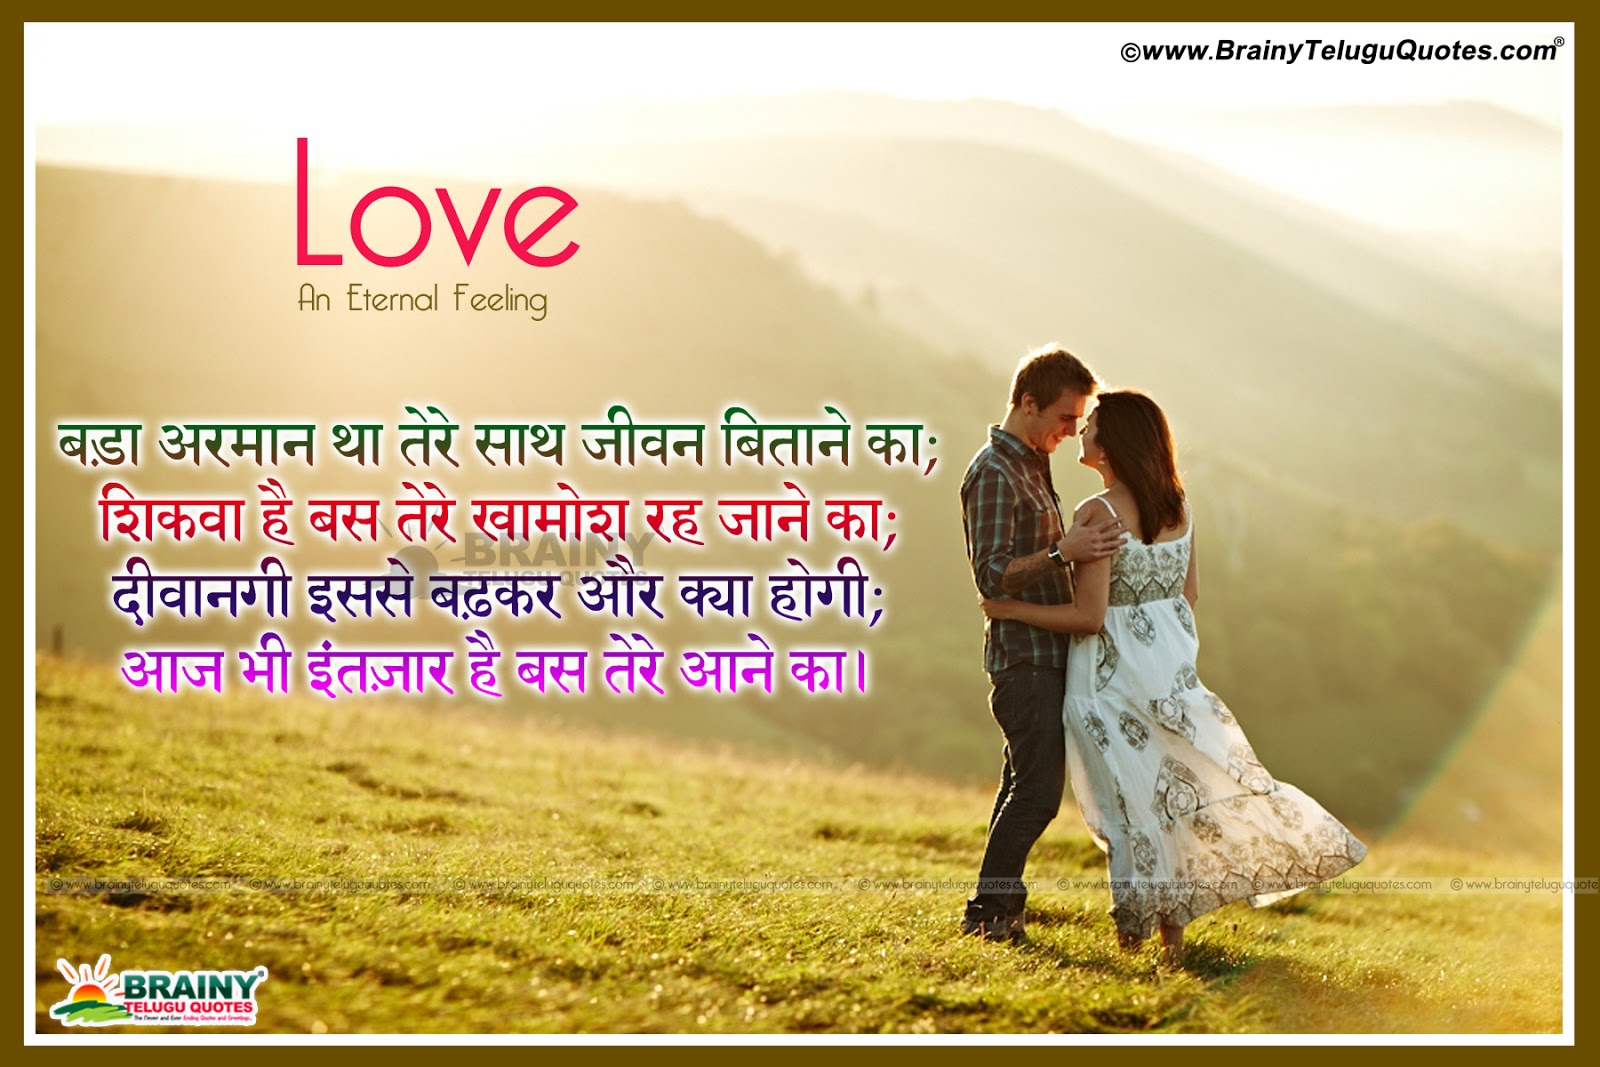 Hindi True Love Quotes Greetings Wallpapers Online With Lovers Hd Images Brainyteluguquotes Comtelugu Quotes English Quotes Hindi Quotes Tamil Quotes Greetings